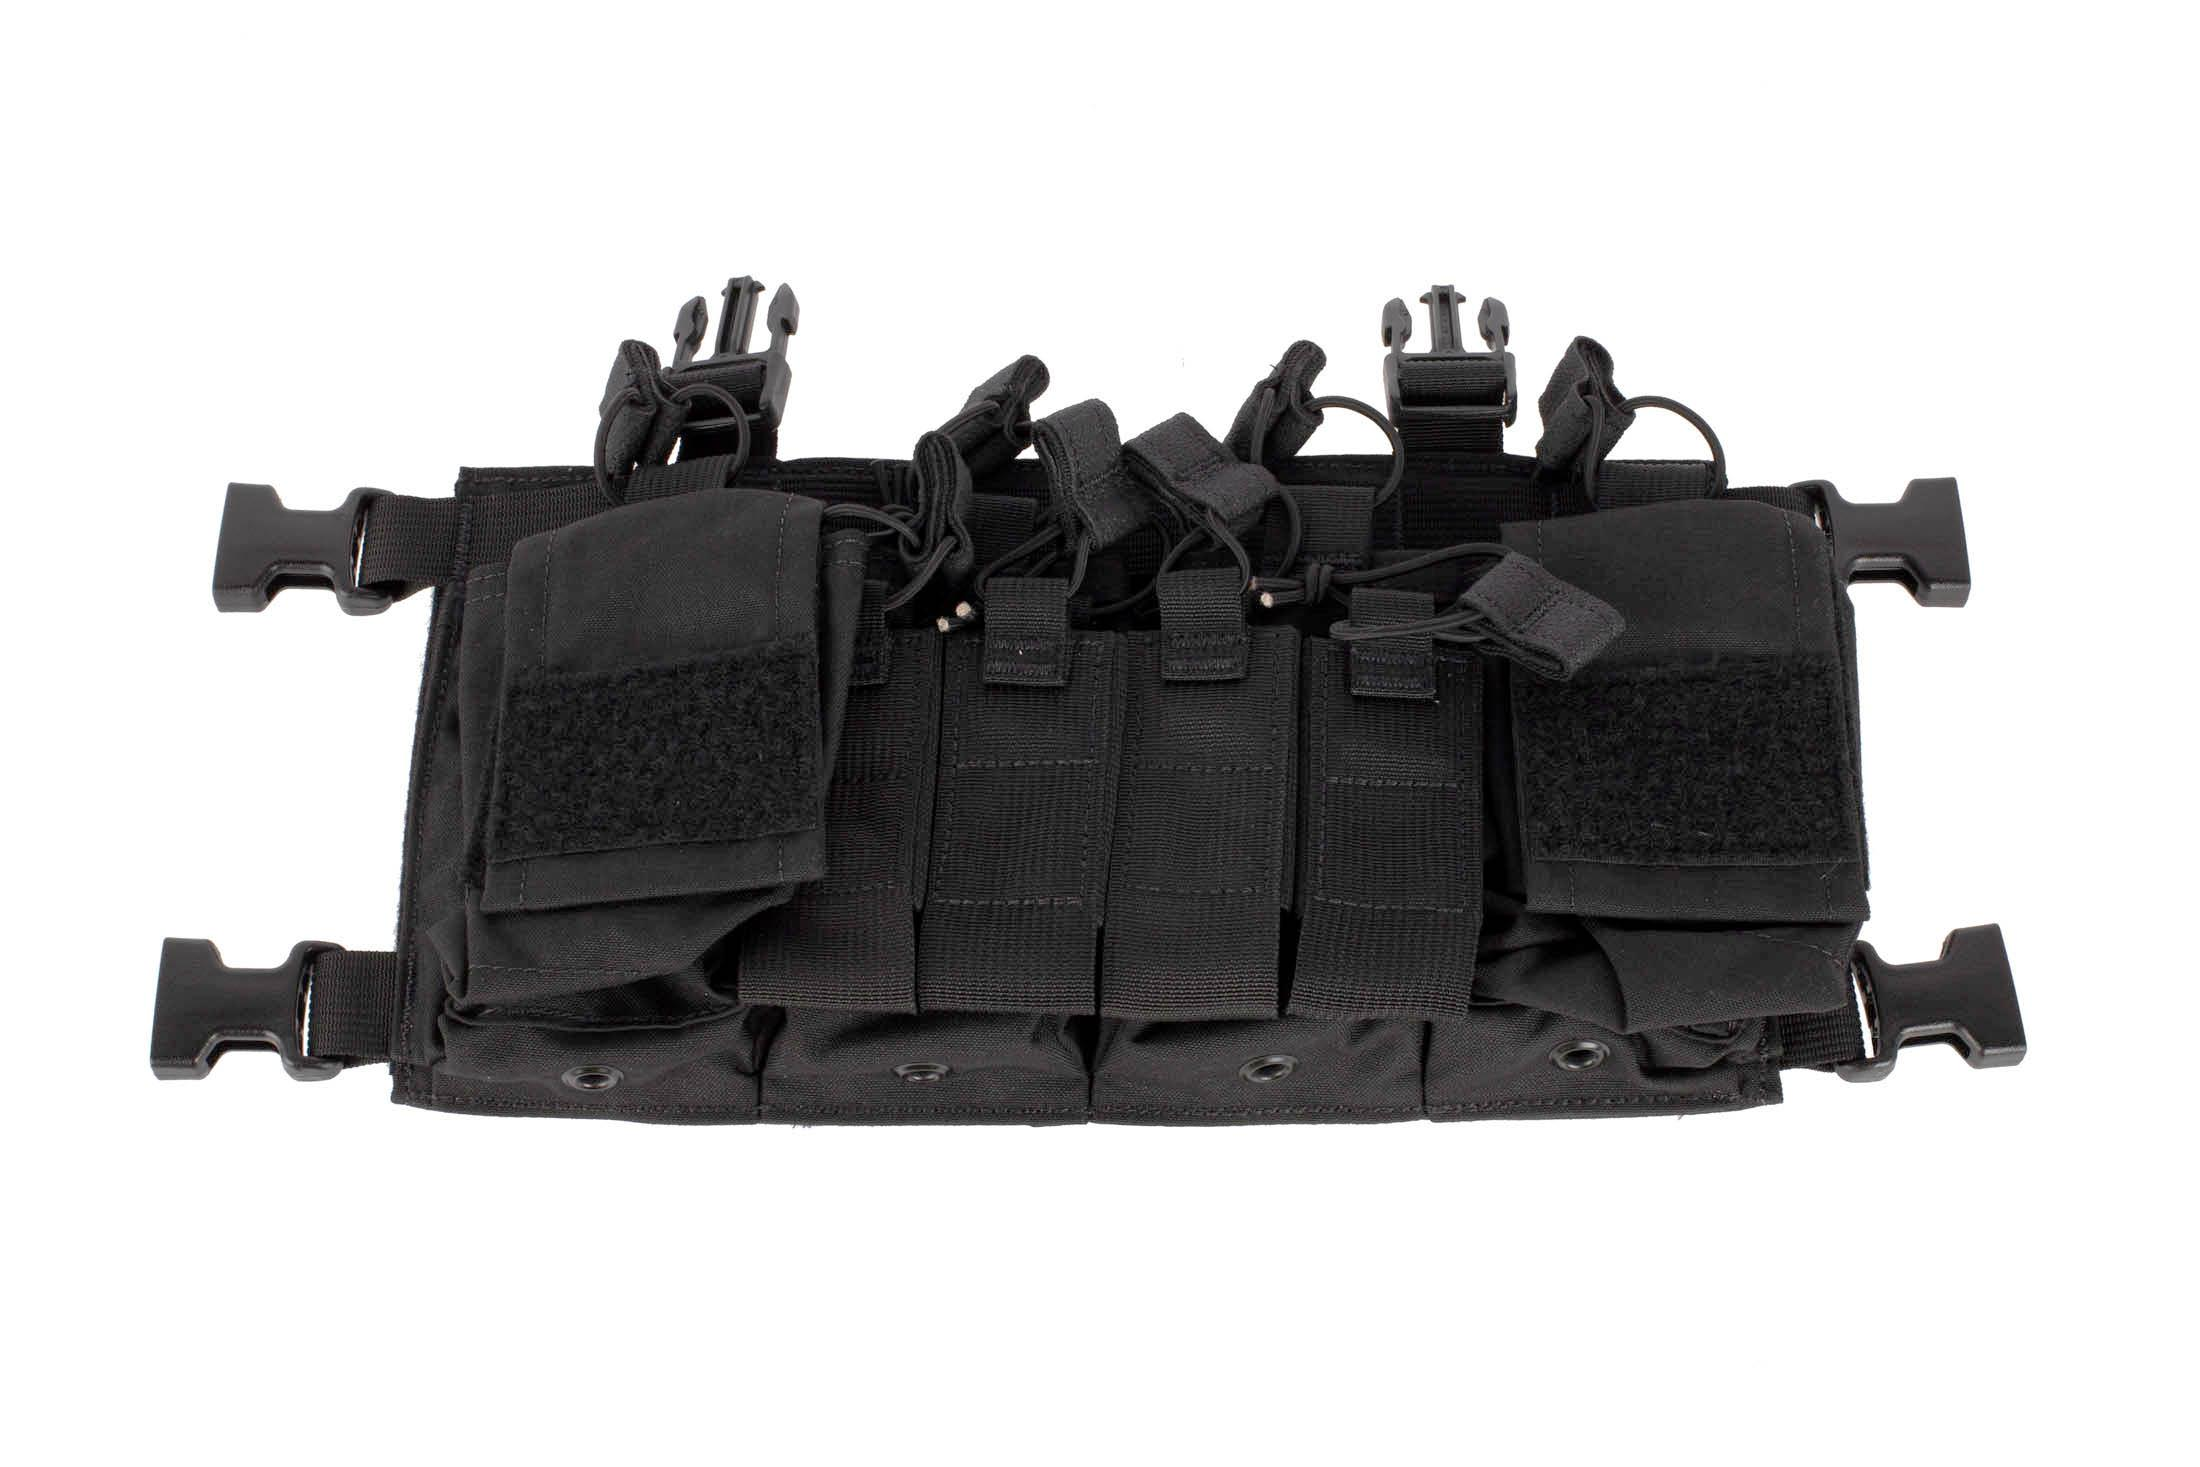 Haley Strategic D3CRX chest rig in black includes twin double mag pouches and four multi-mission pouches